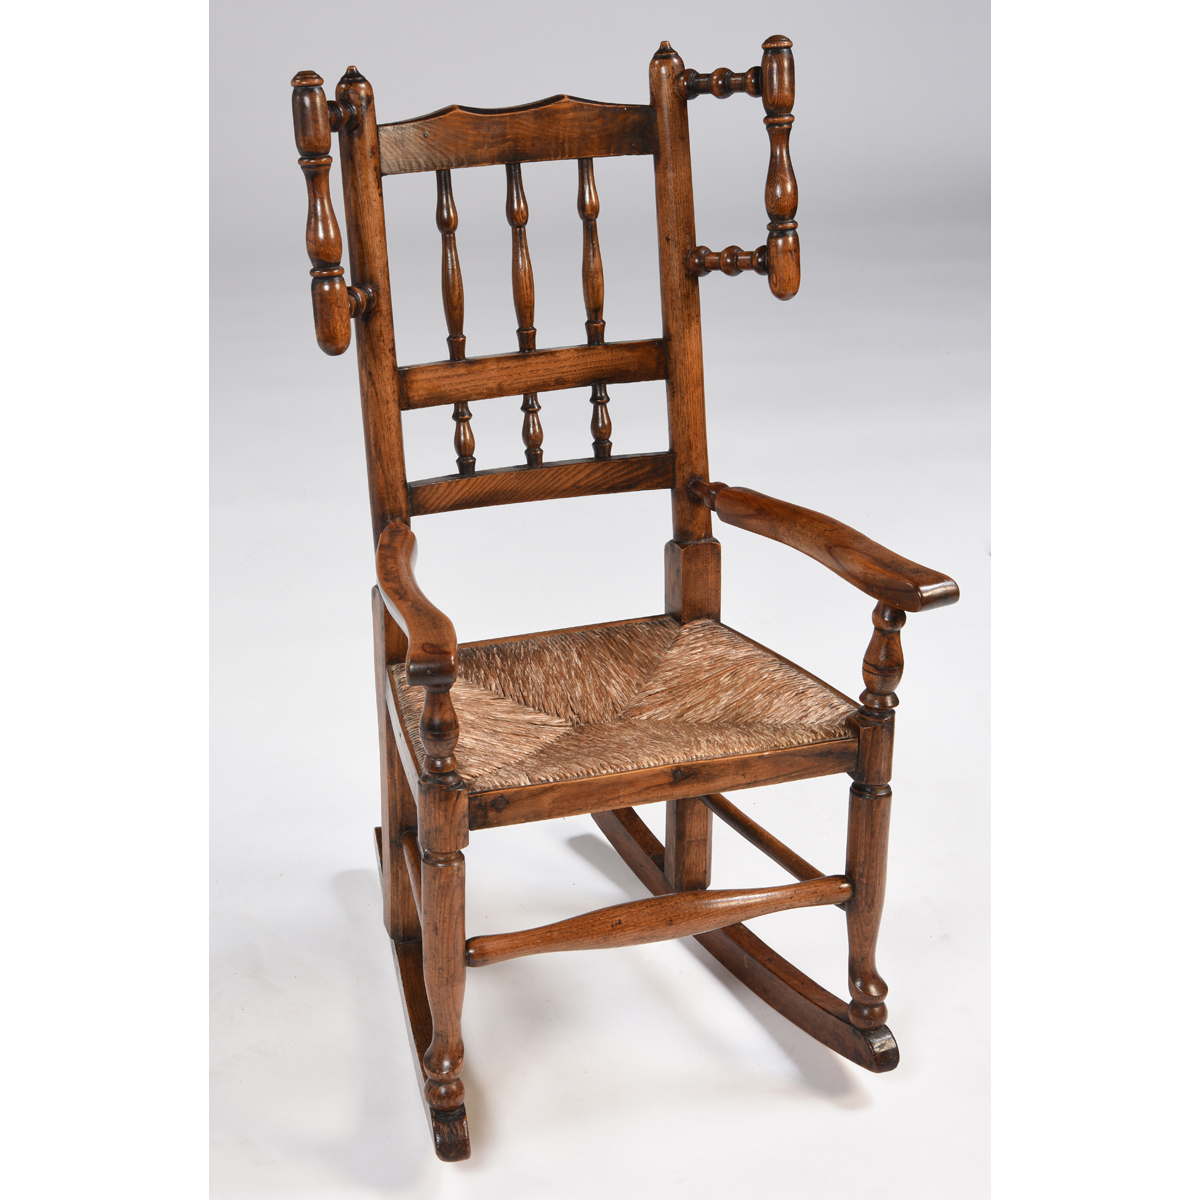 Antique English Child's Rocking Chair - Antique English Child's Rocking Chair|English Antiques - Caledonian